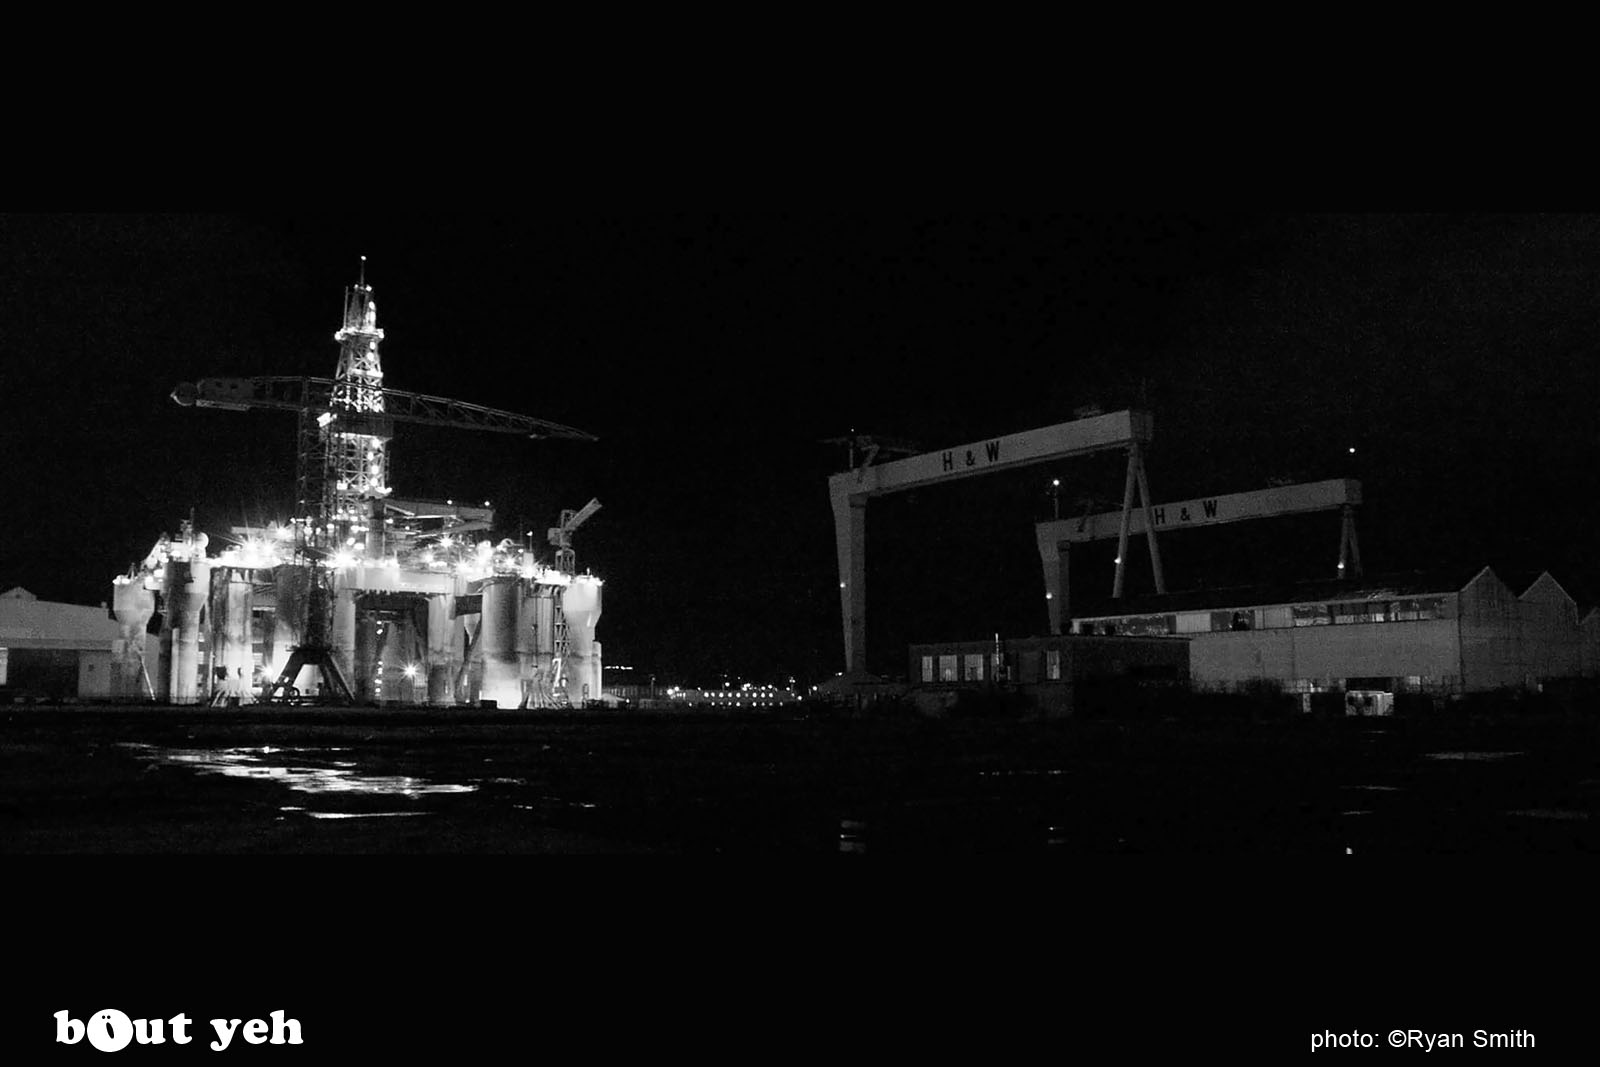 Night shot of Harland and Wolff shipyard by photographer Ryan Smith.